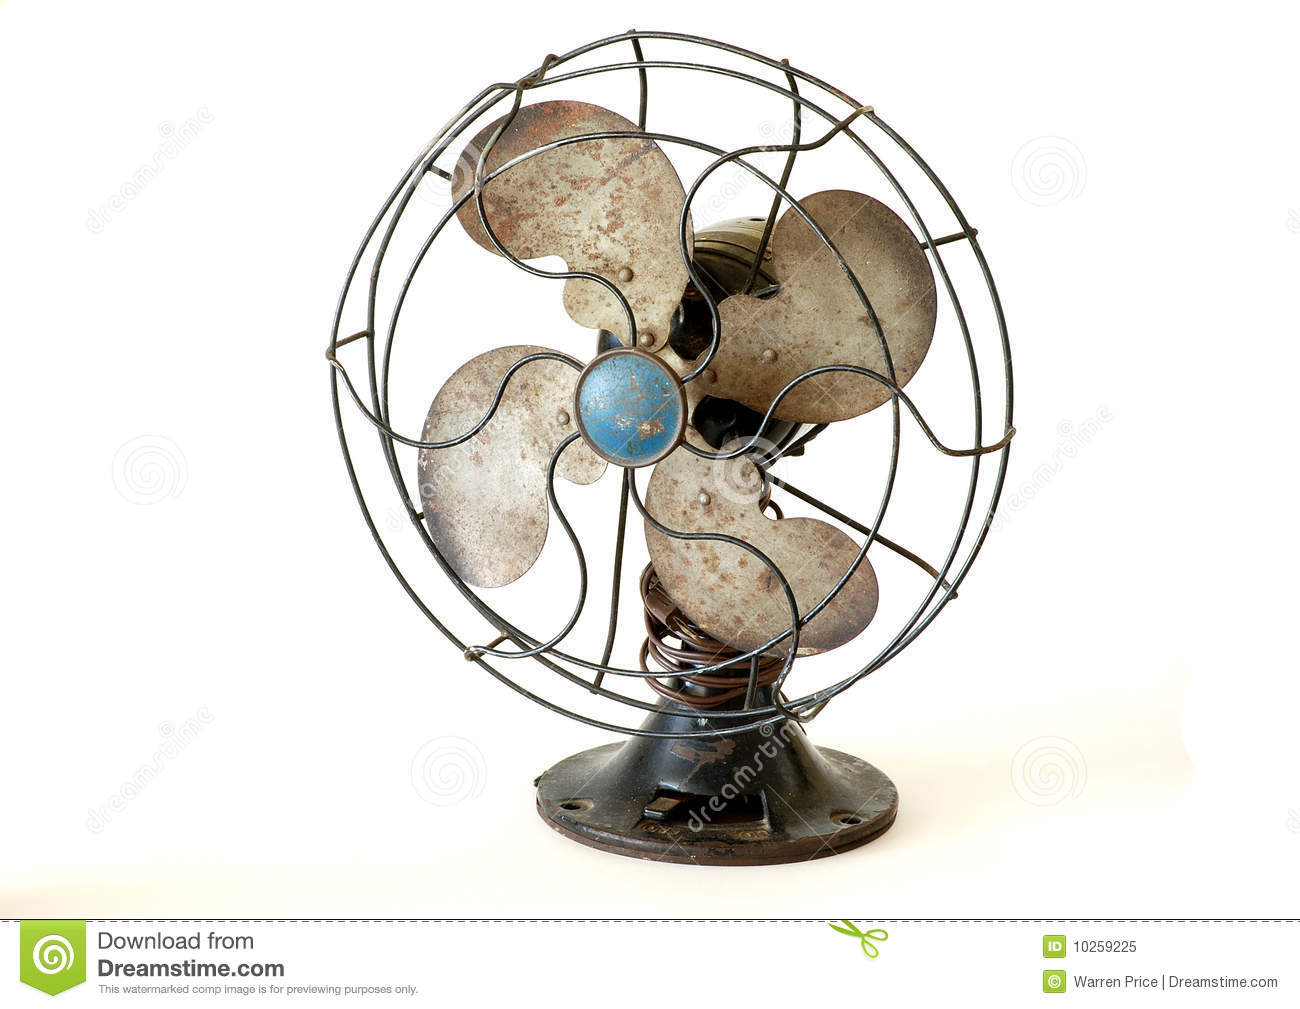 Antique Electric Fan Stock Image  Image Of Wire